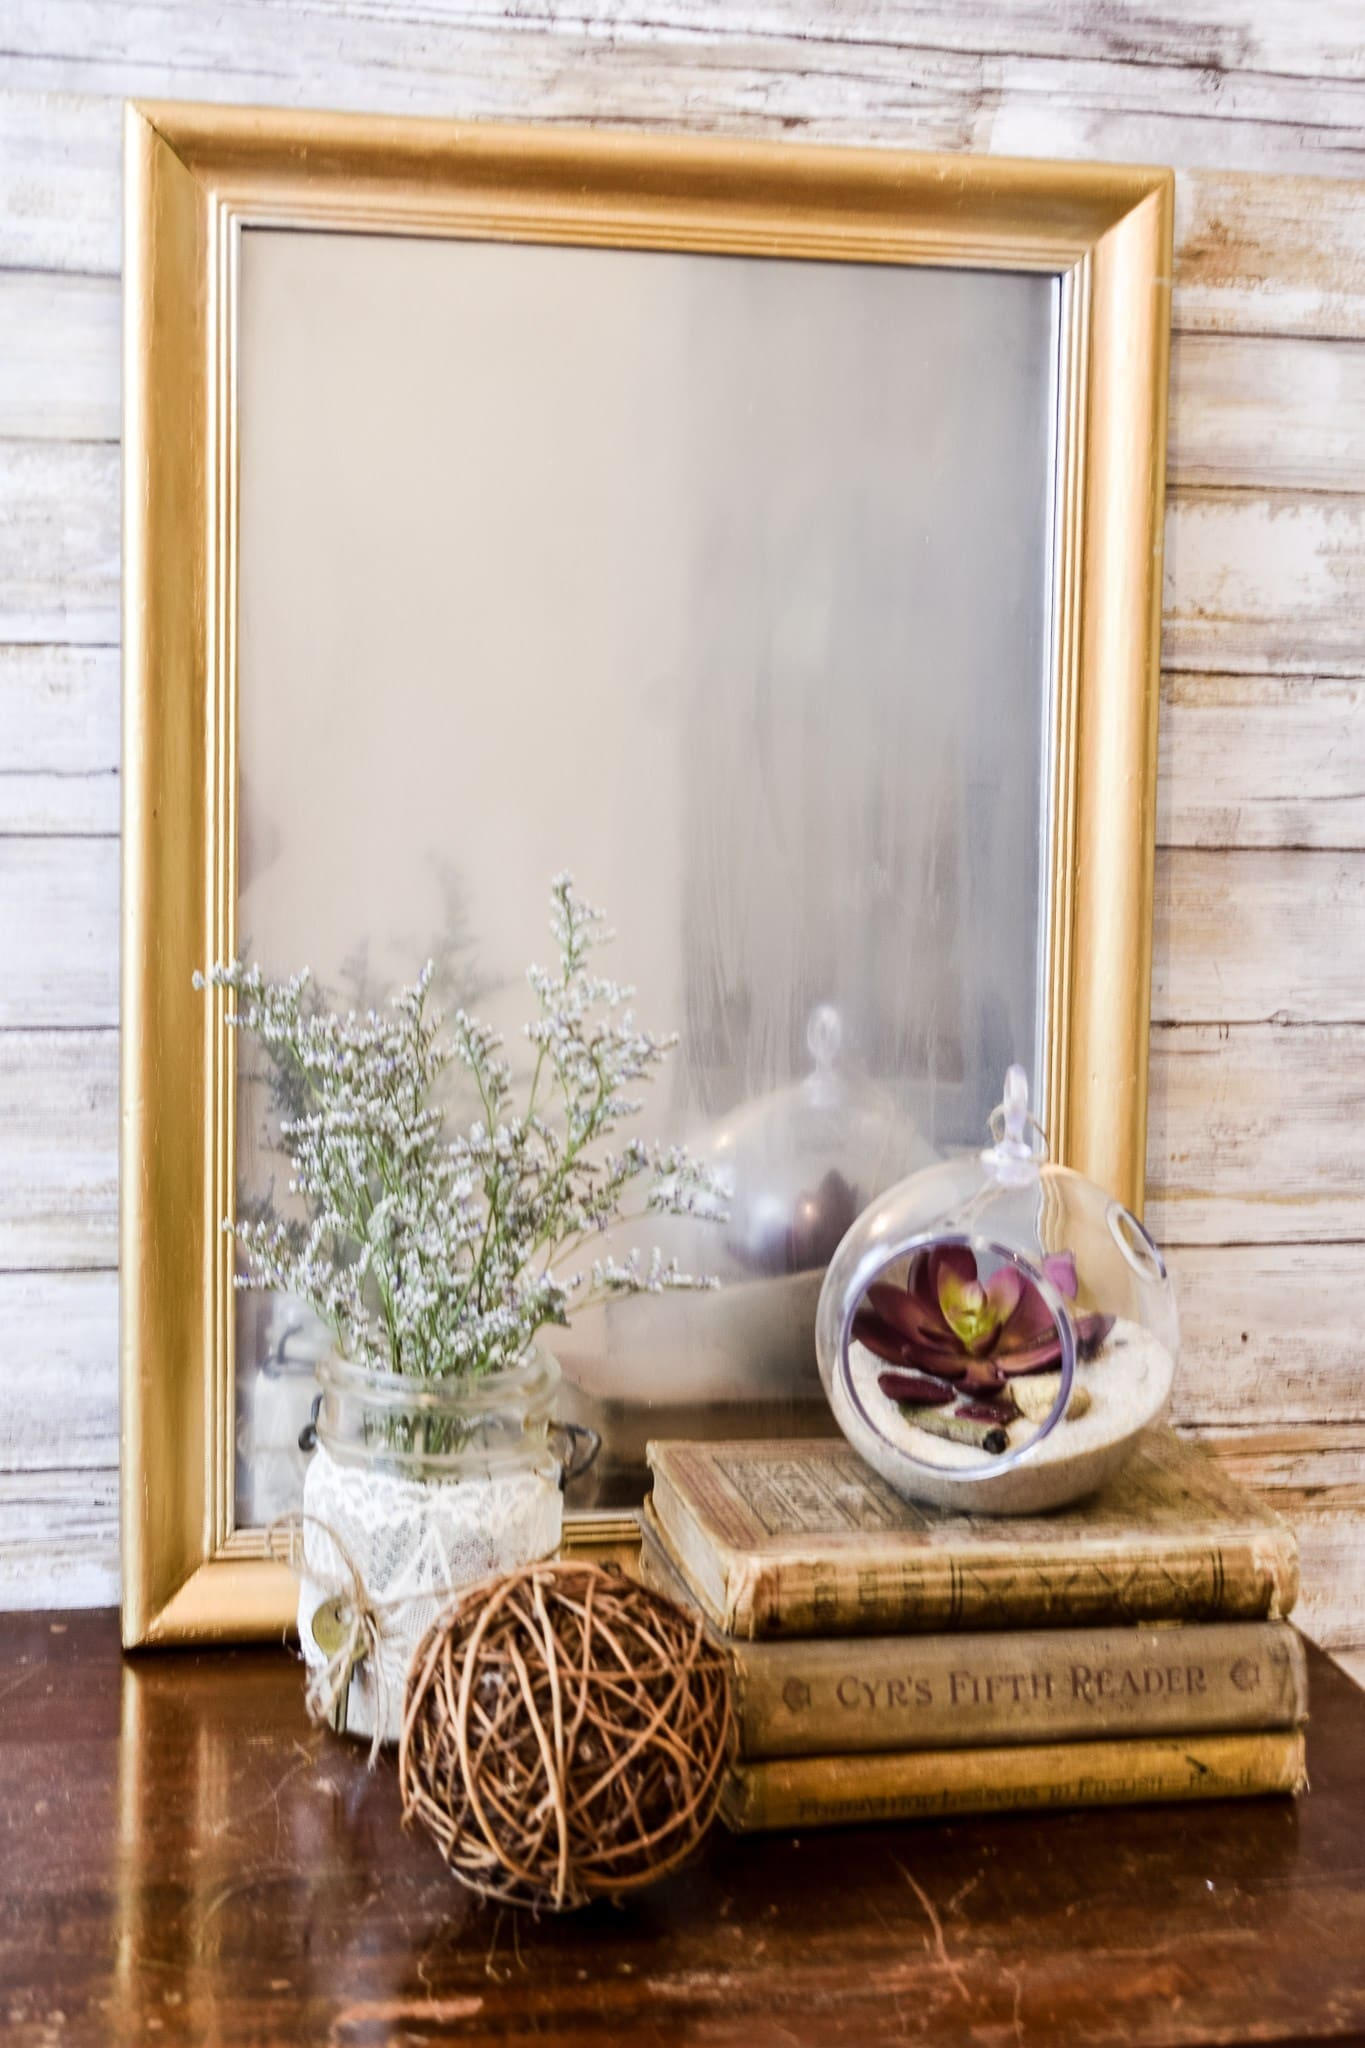 DIY frosted mirror tutorial - Zucchini Sisters